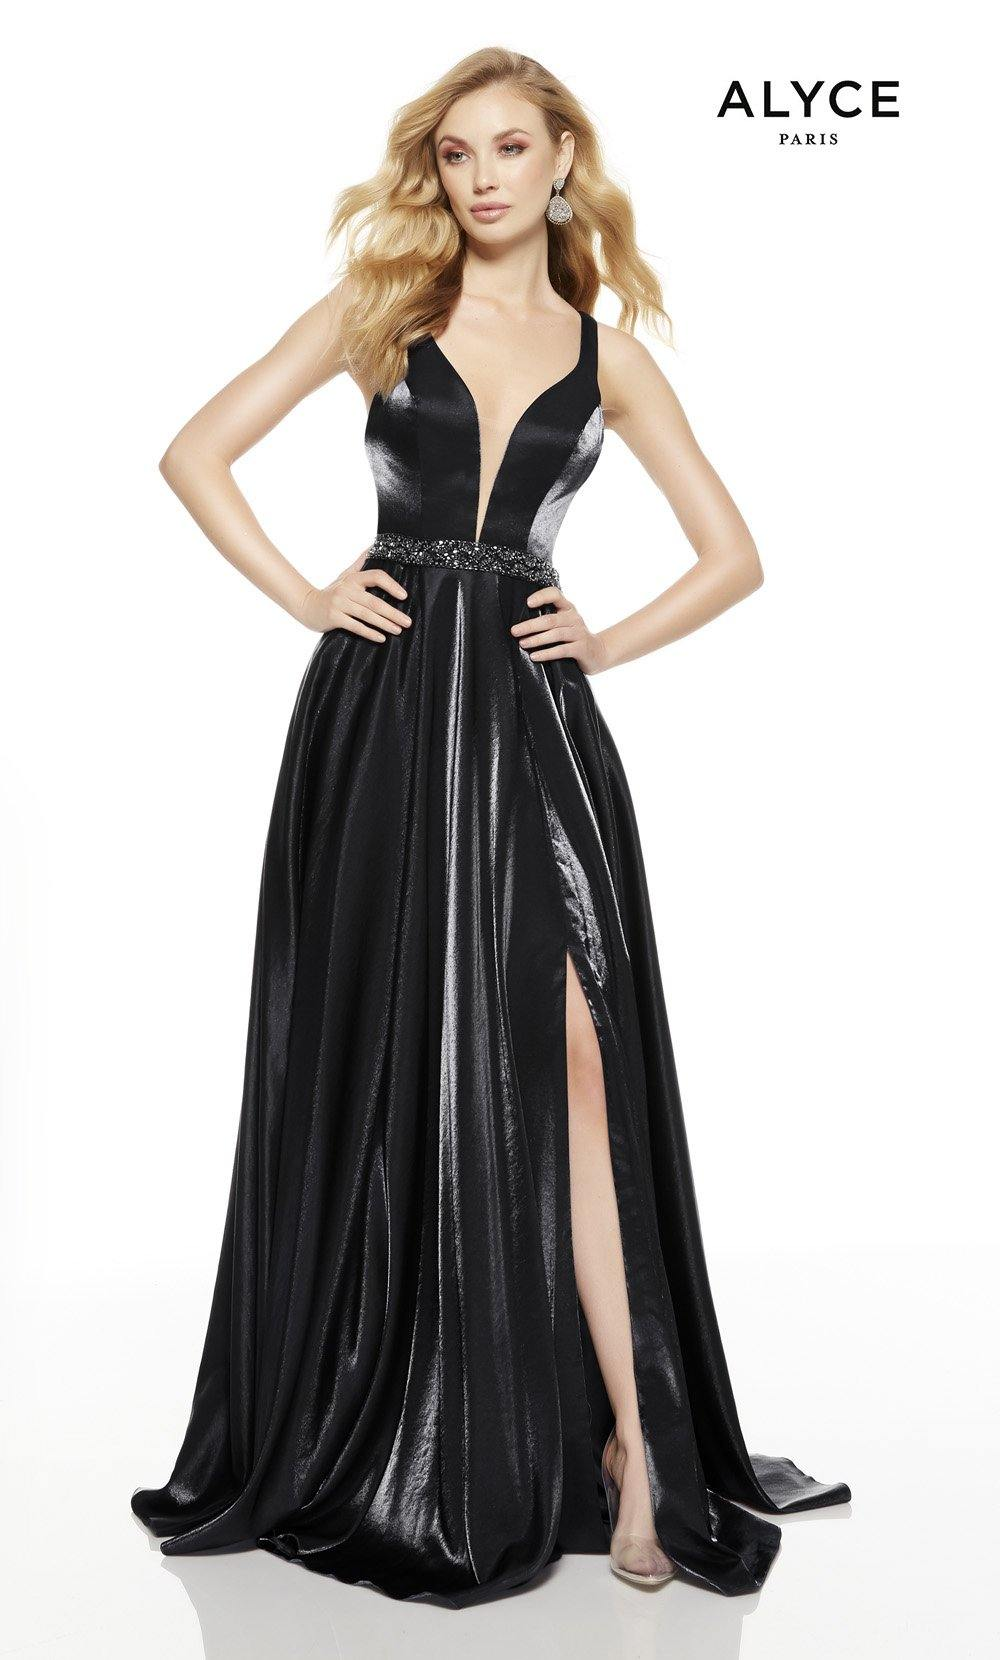 Black prom dress with a slit and plunging neckline